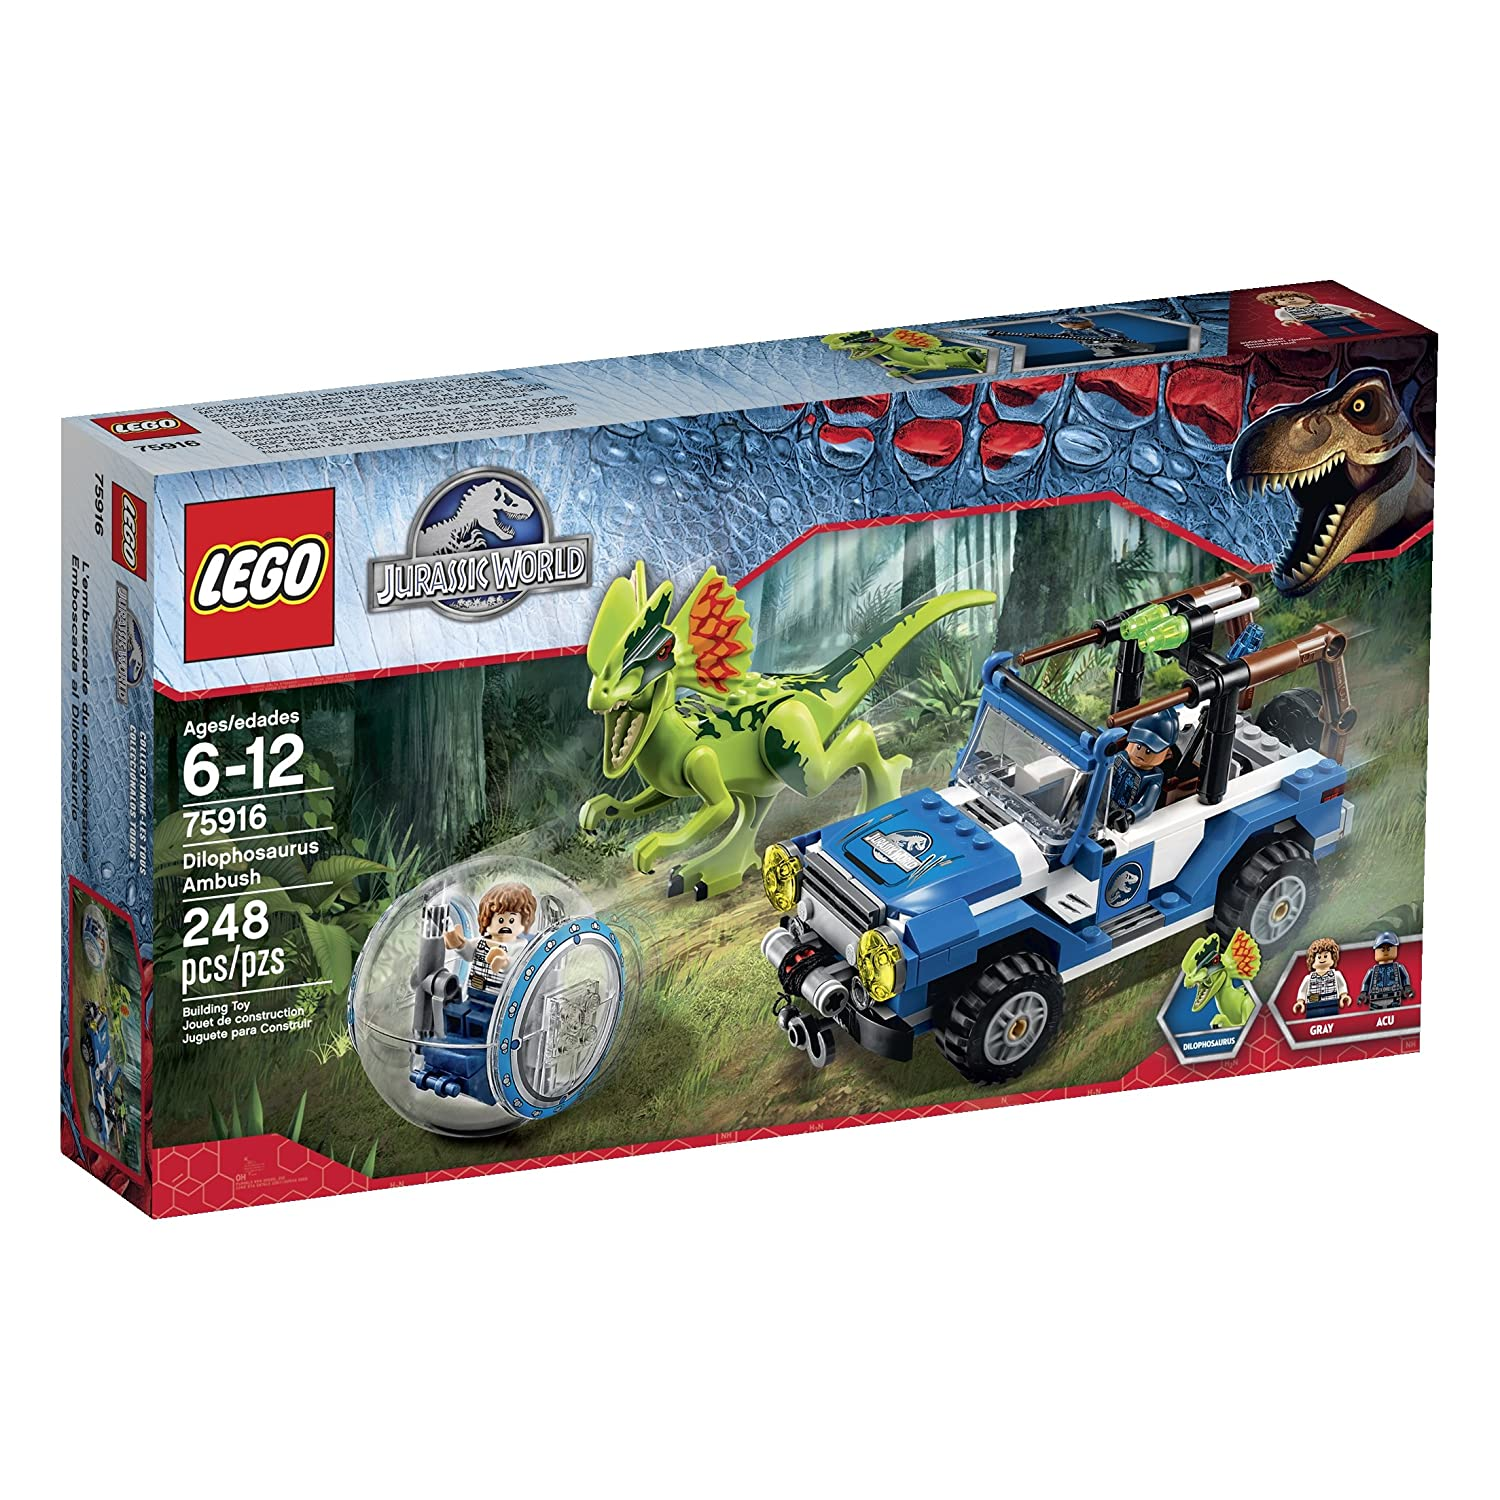 Top 8 Best Lego Dinosaurs Set Reviews in 2021 10